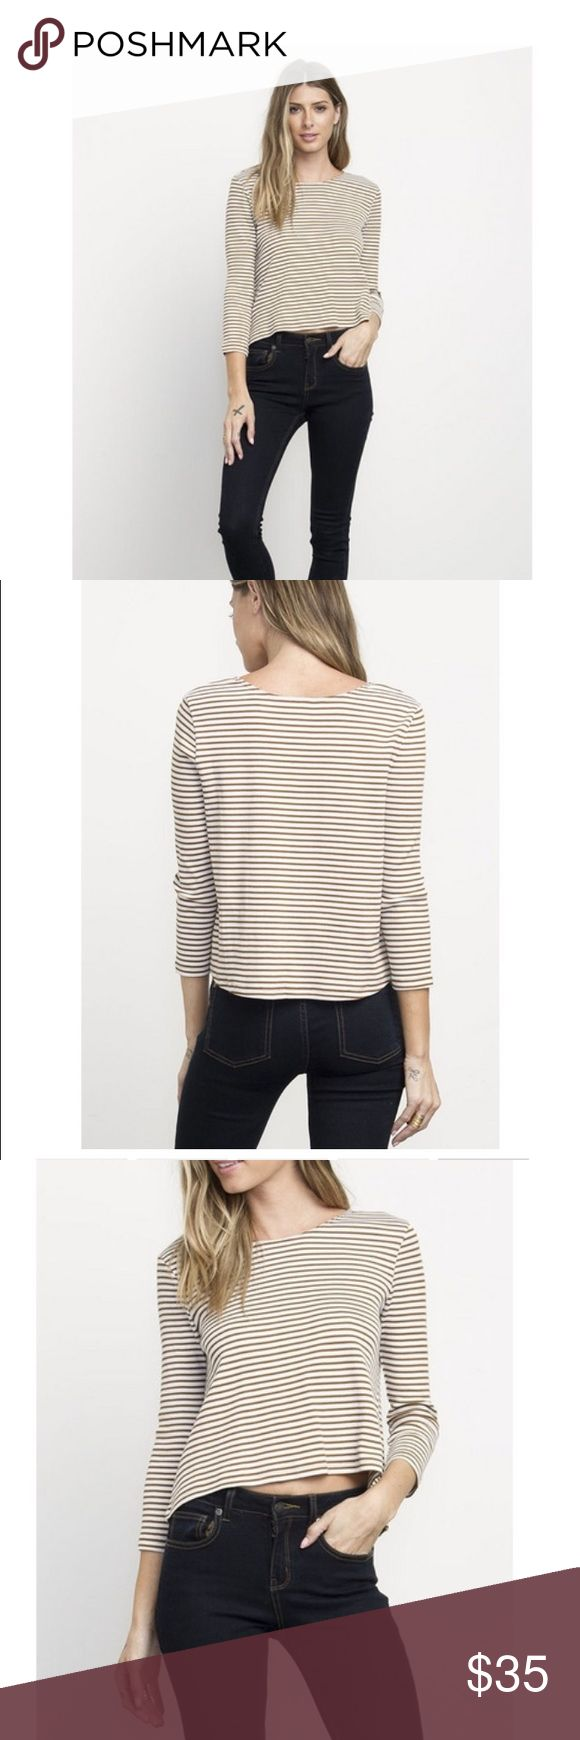 RVCA women's top Tan and cream striped top, nice thick material. I love how versatile this top is, could dress it up, layer it, or just wear with jeans and look pulled together, but it's just the tiniest bit cropped in the front and I am a mom and a teacher and I can't hang. I have a long torso so that's a problem too. RVCA Tops Tees - Long Sleeve